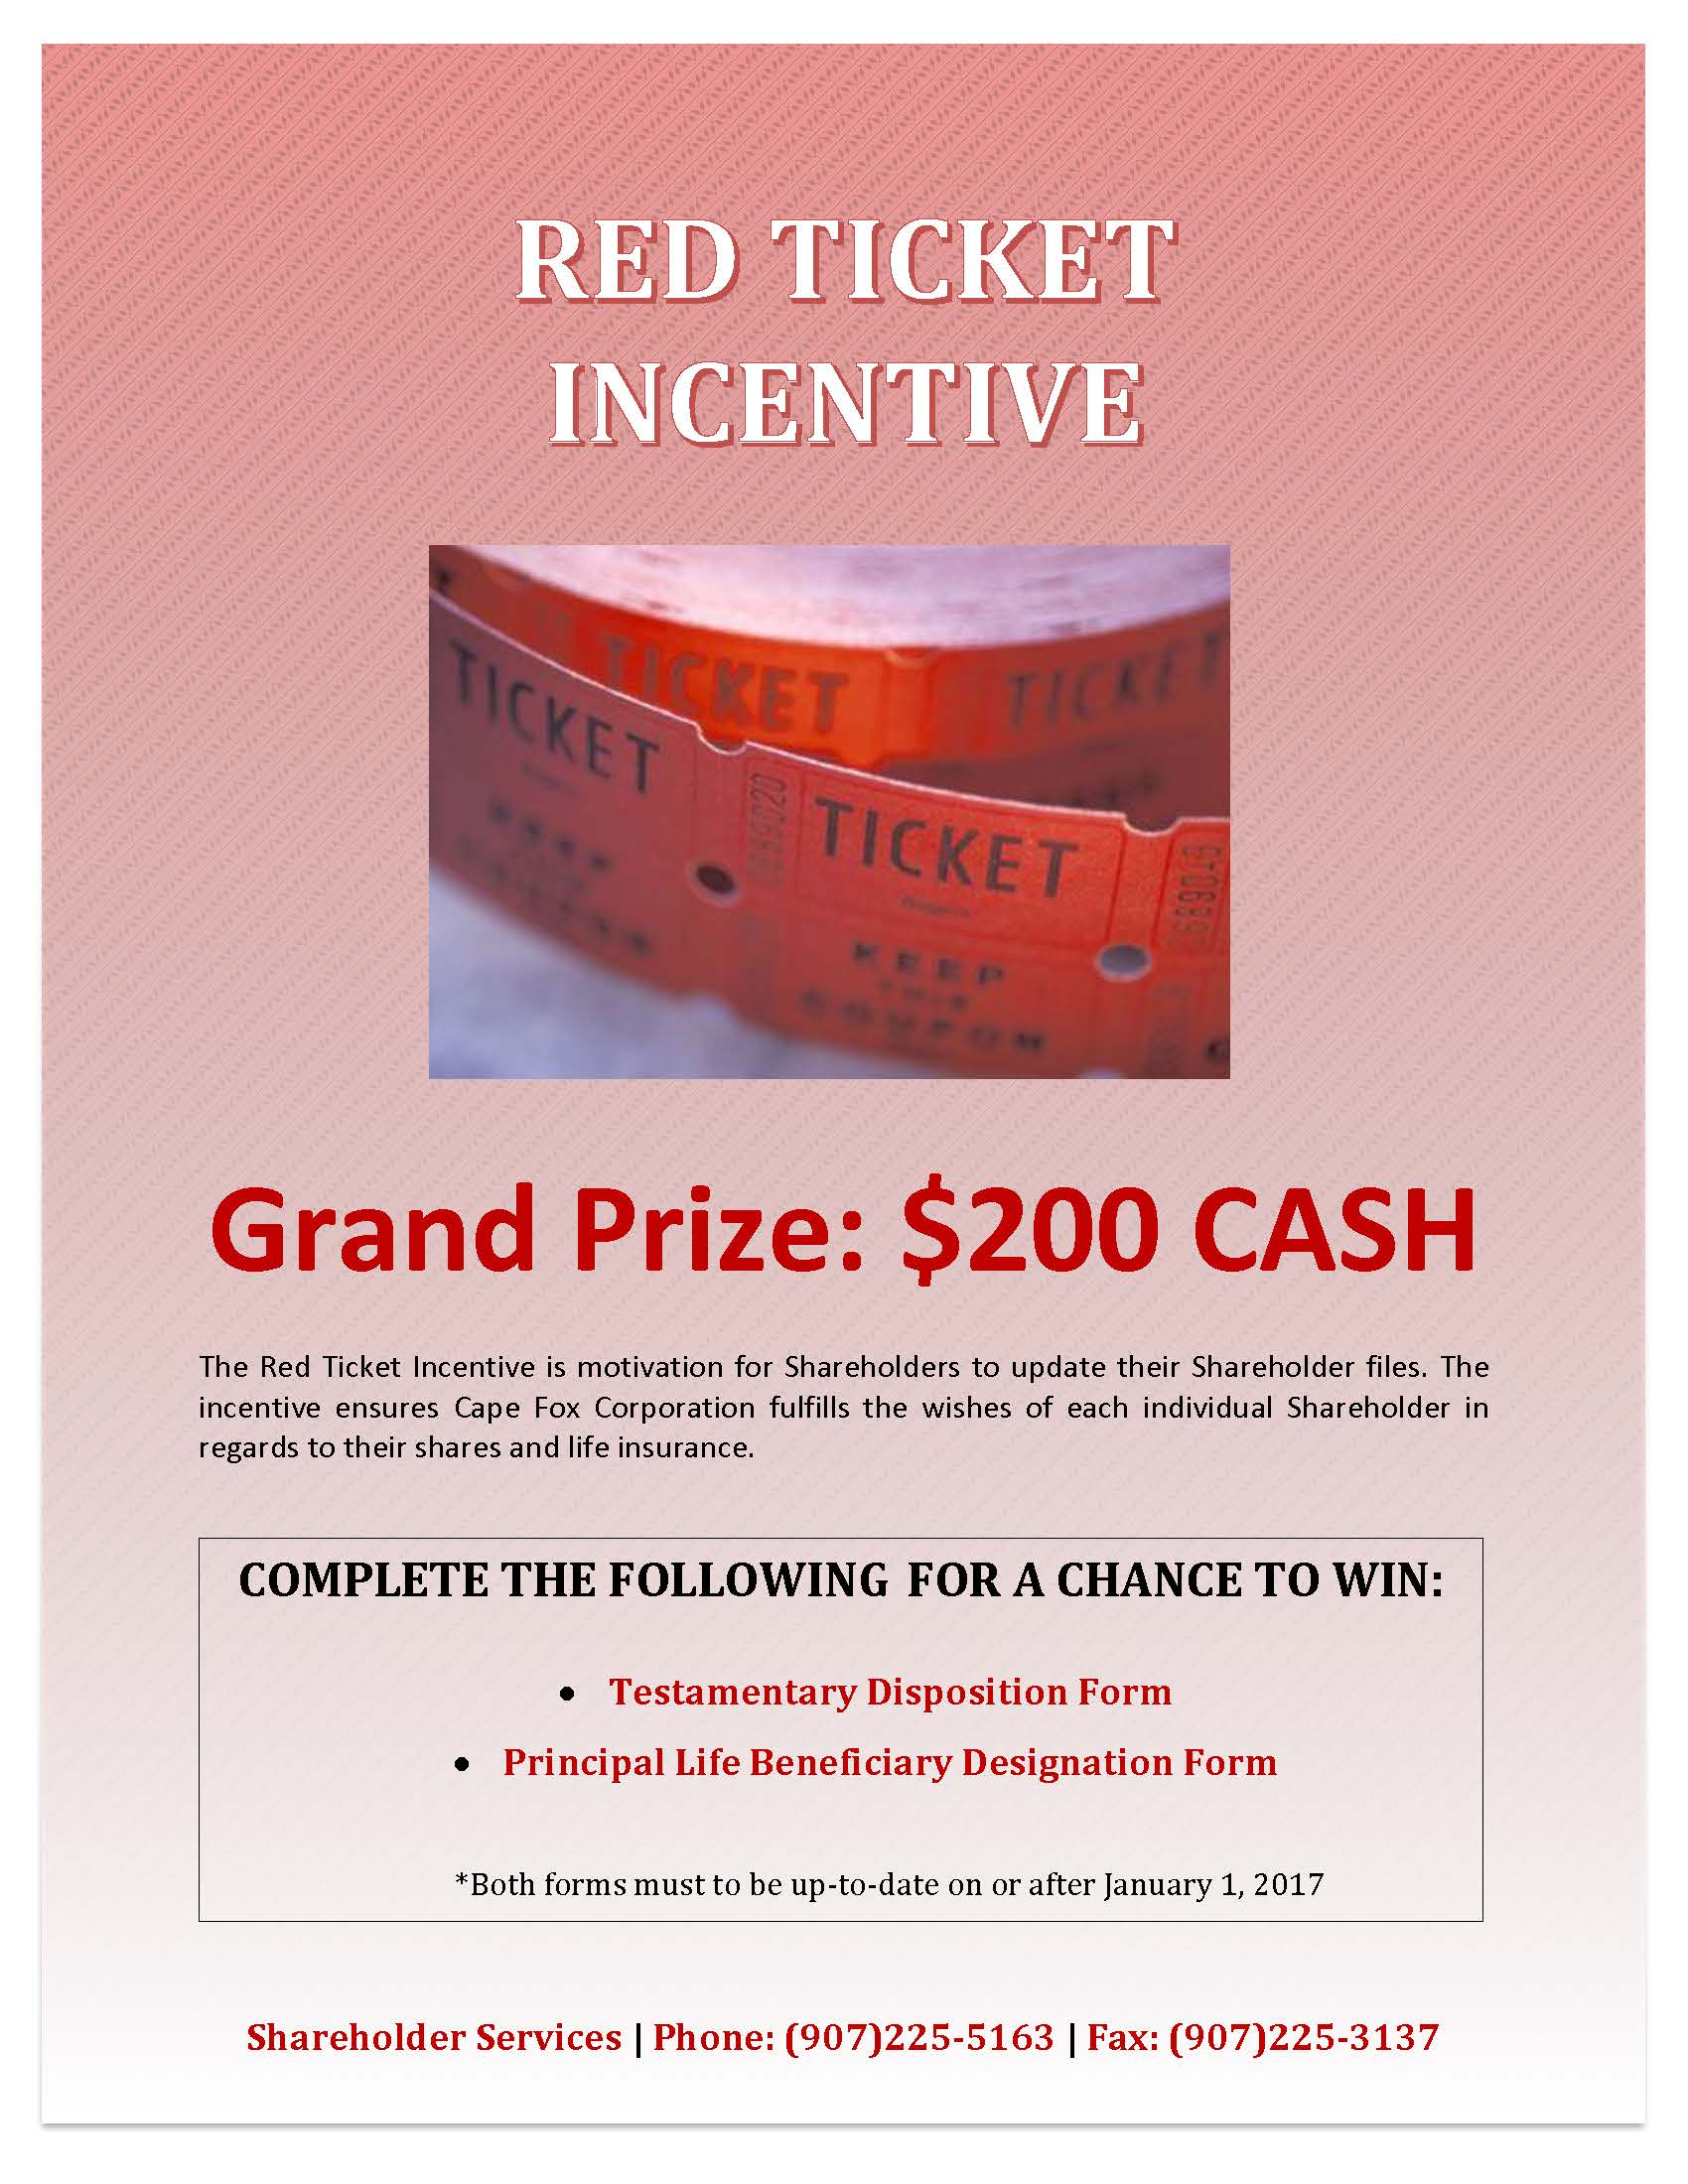 Red Ticket Incentive 8.22.19.jpg